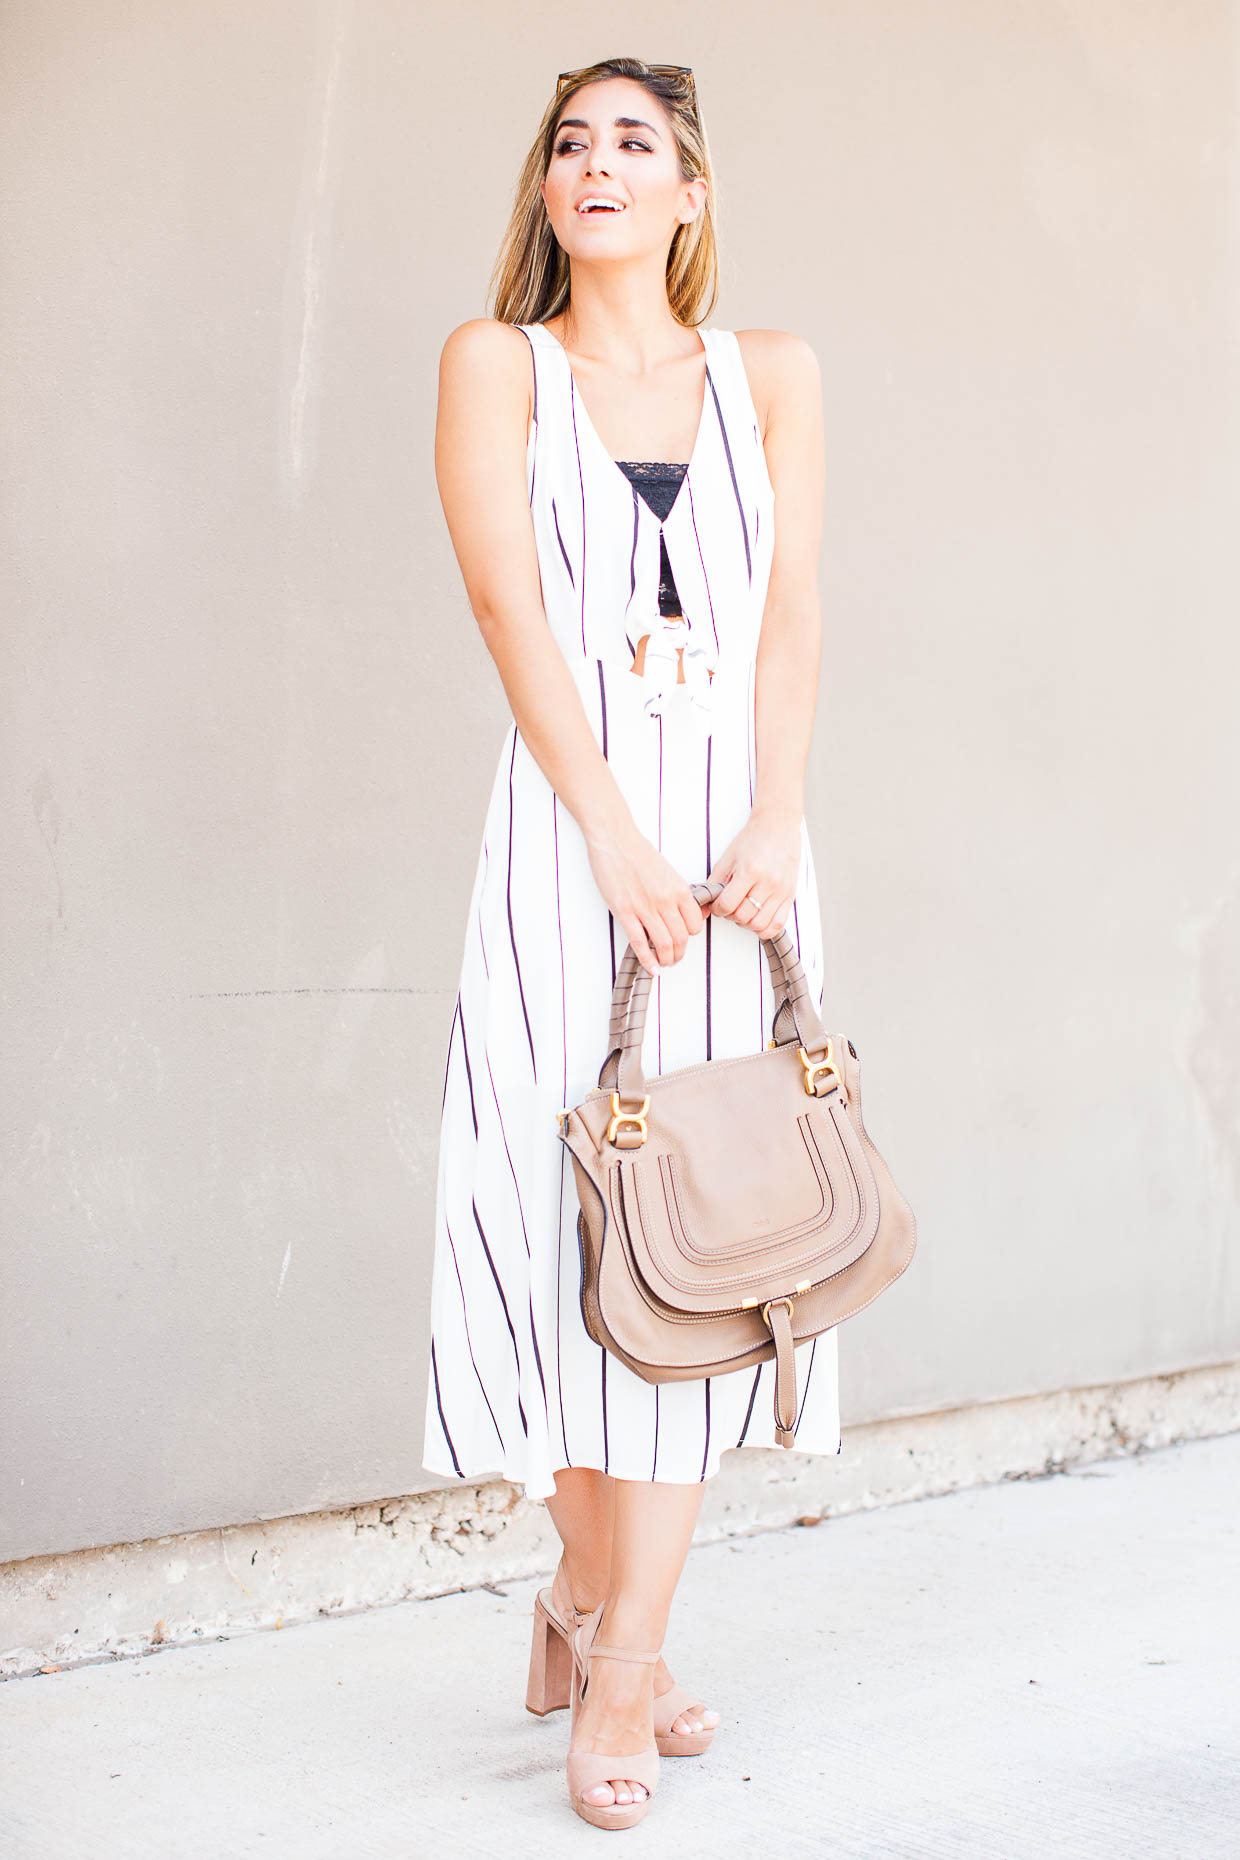 Fashion Blogger The Darling Detail is wearing an ASTR Tie Front Midi Dress, a Free People Scalloped Lace Bandeau, Ray-Ban 'Highstreet' Sunglasses, and is holding the Chloe 'Medium Marcie' Leather Satchel.